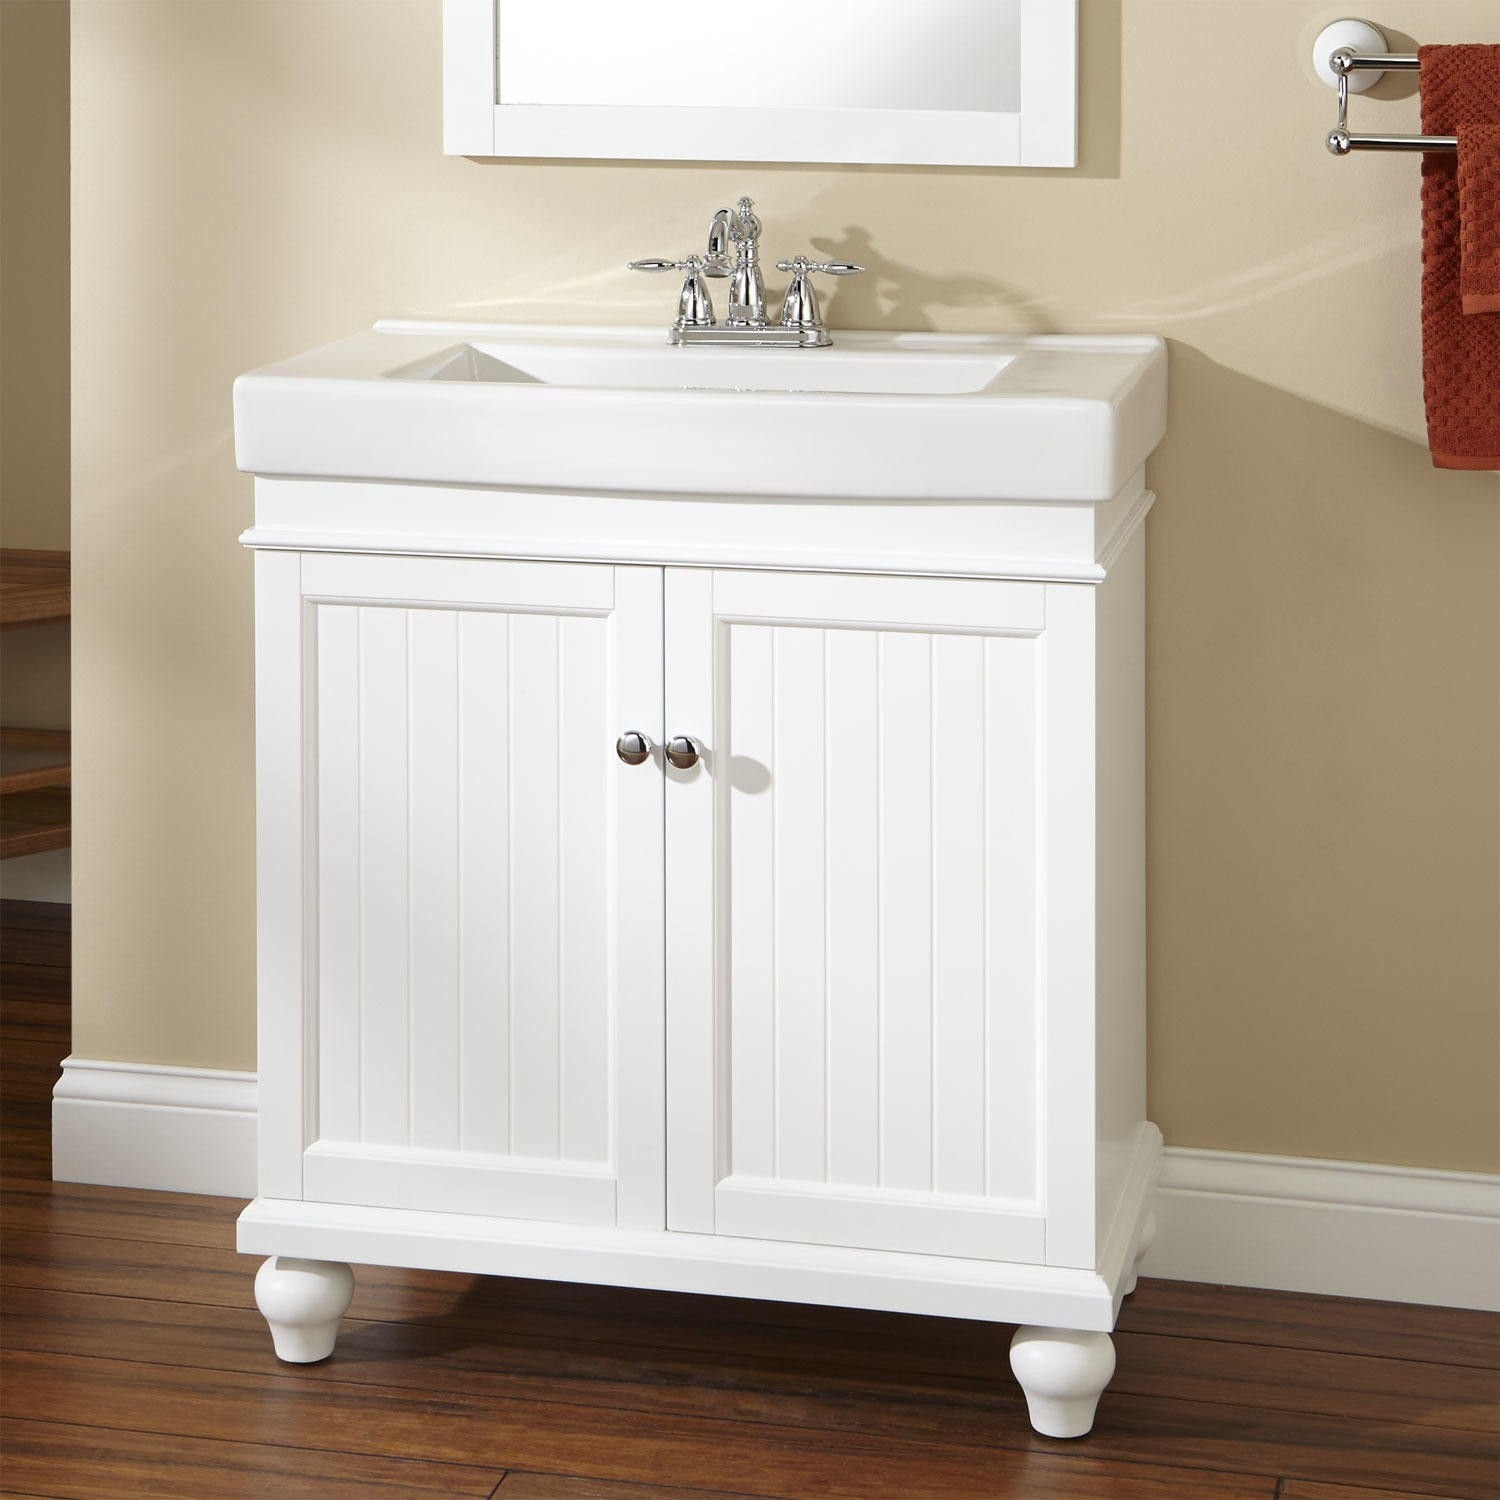 White Bathroom Vanity 30 X 18